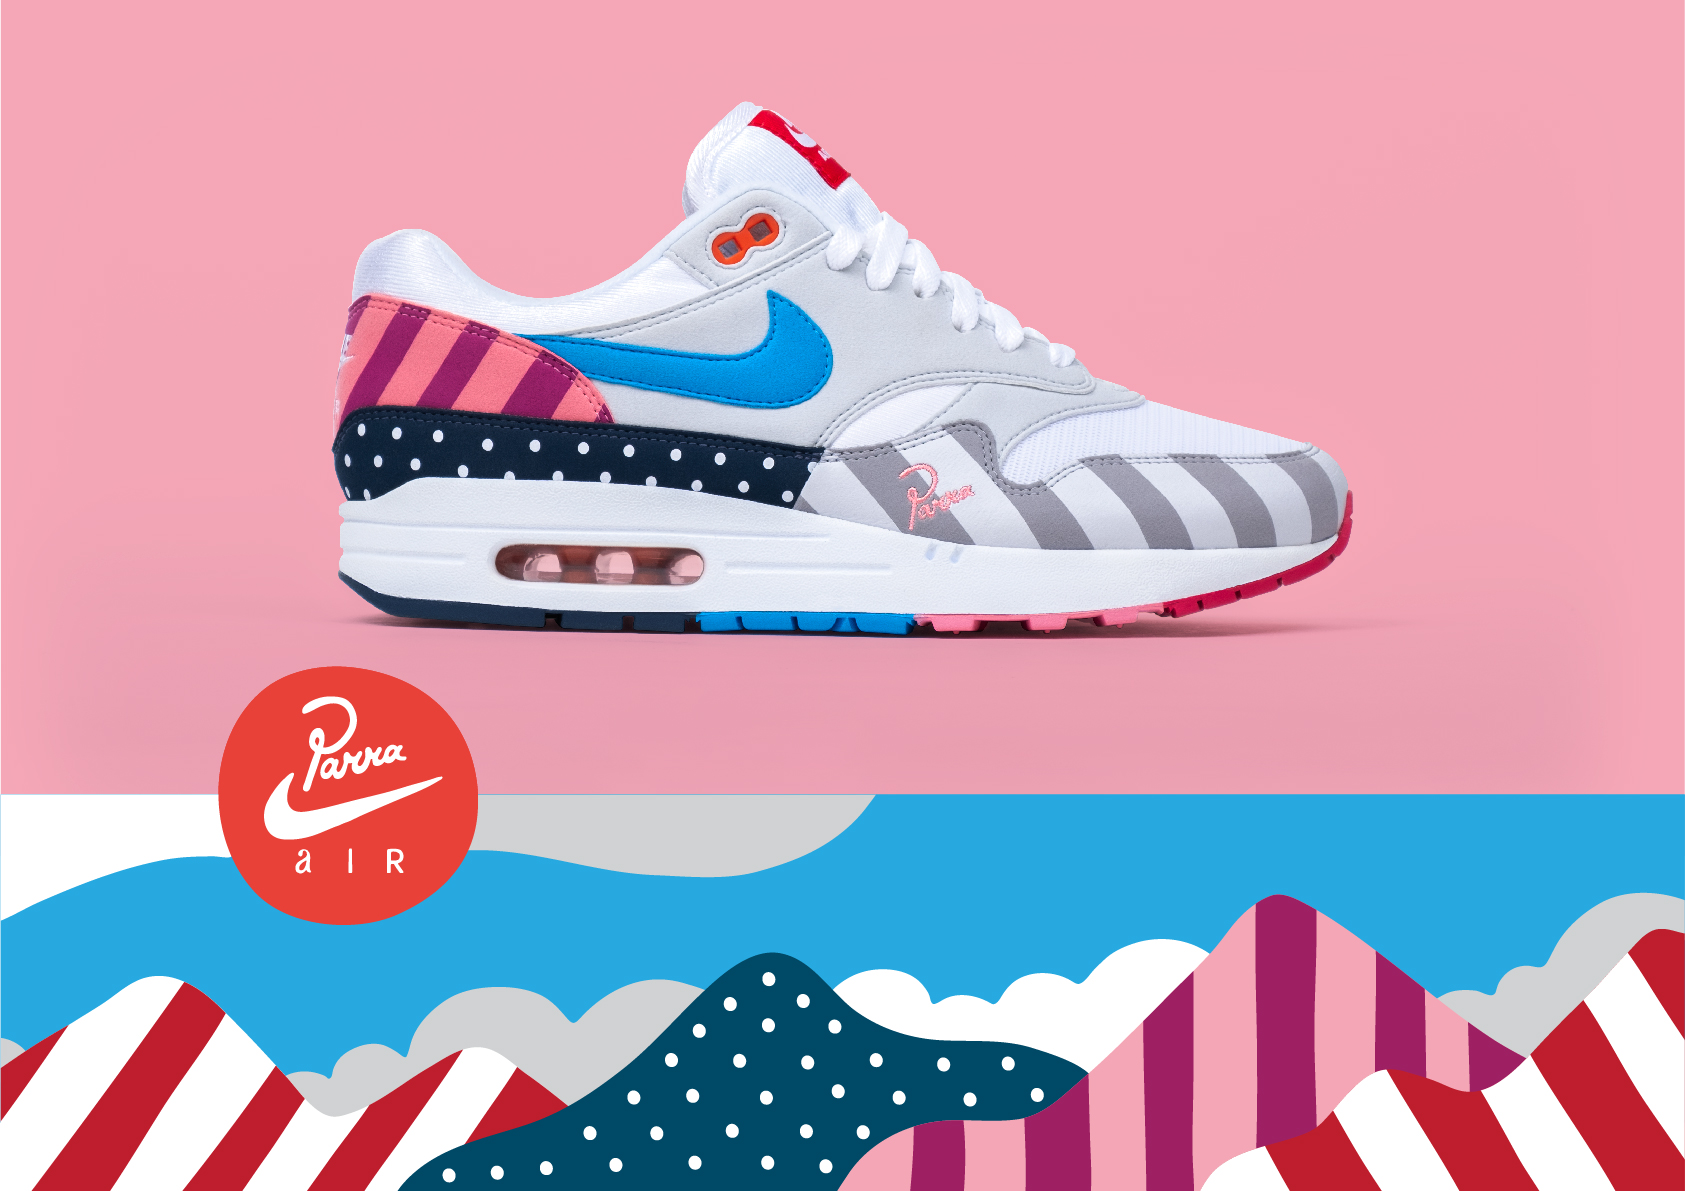 hot sales cc1d2 da7dd DONE: Parra x Nike Air Max 1 Quiz by OVERKILL - OVERKILL Blog